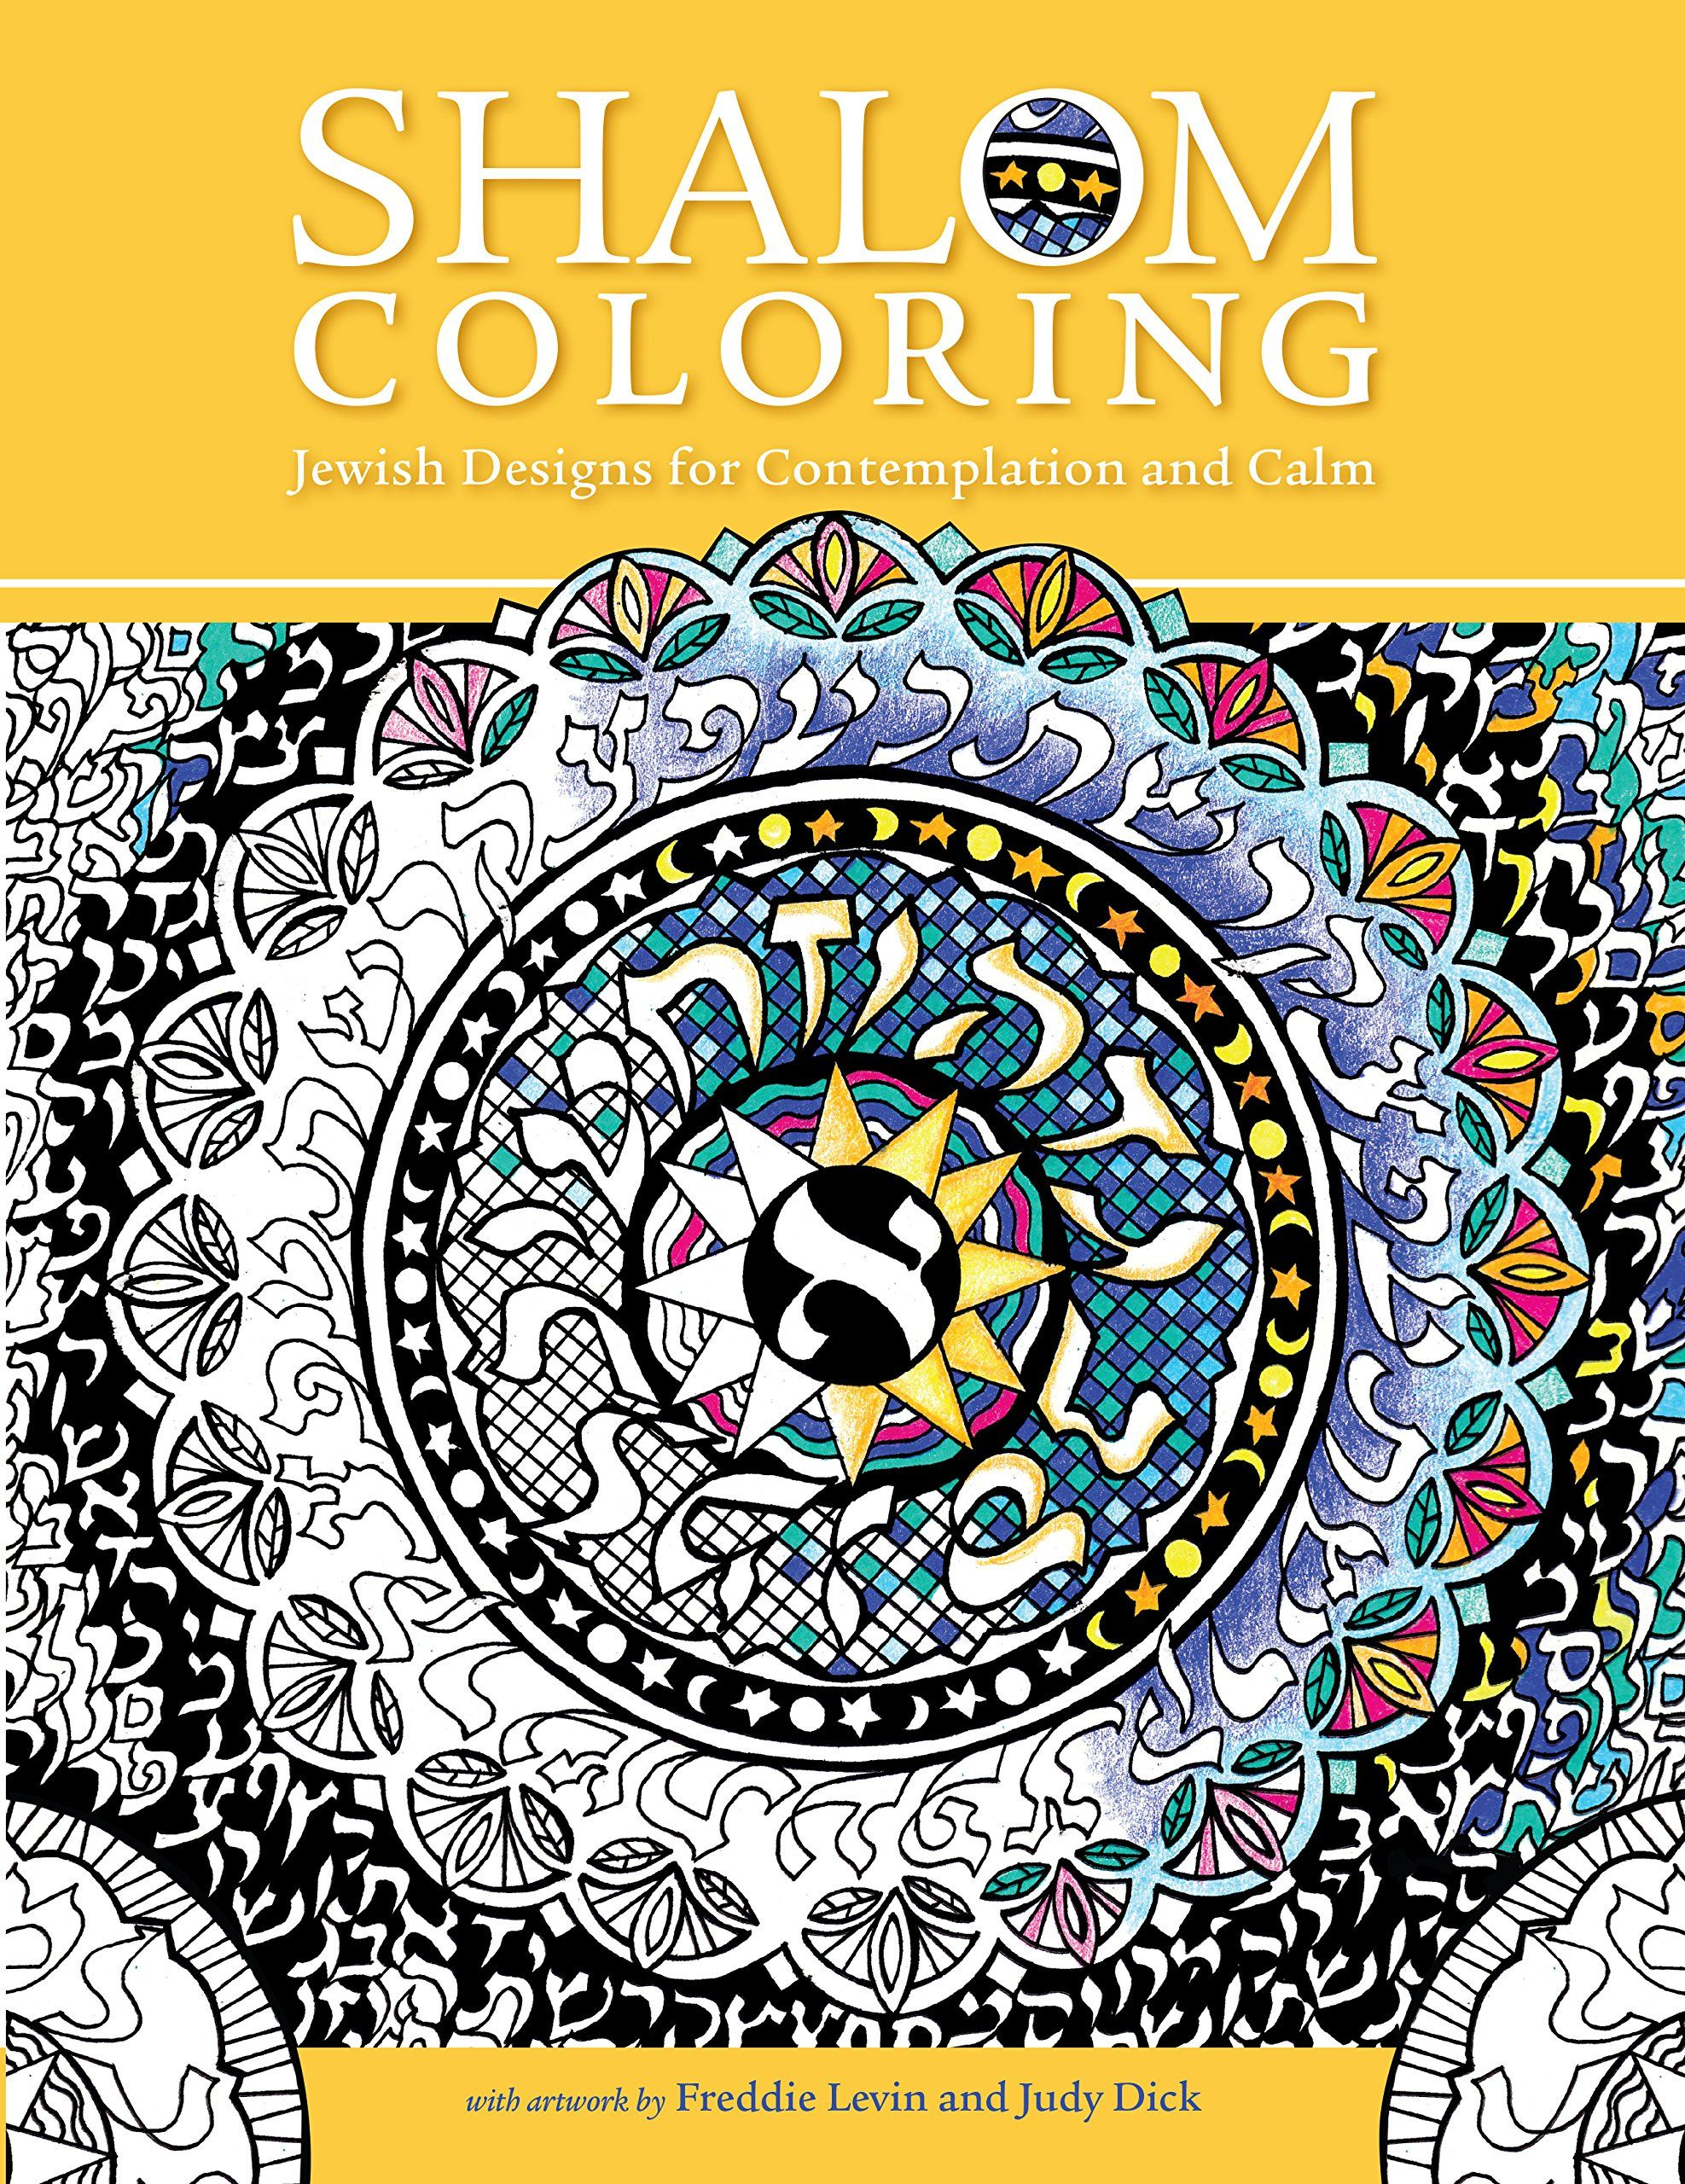 Shalom Coloring Adult Book Freddie Levin Judy Dick 9780874419412 Amazon